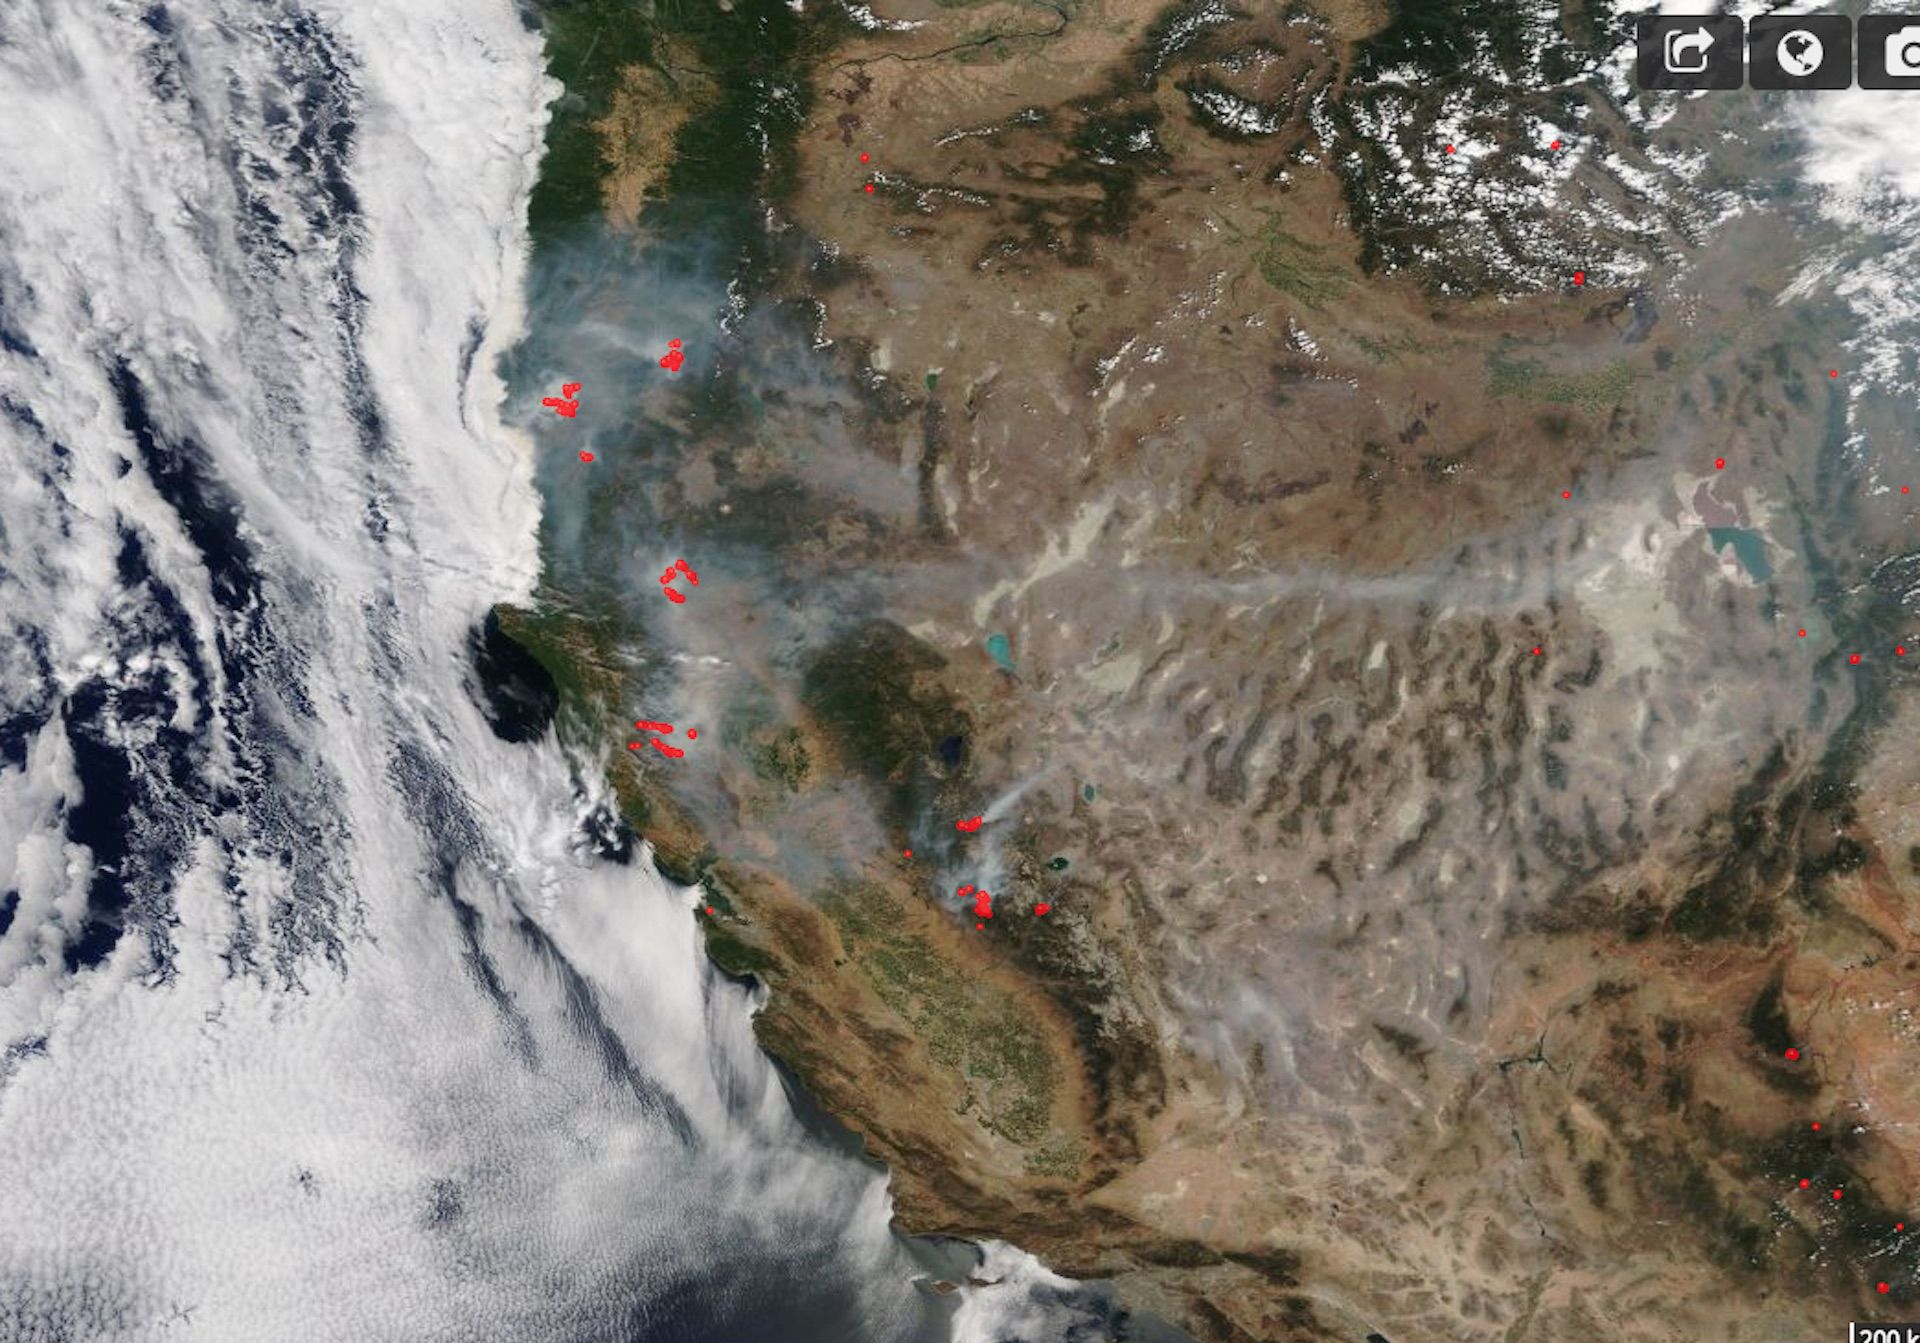 Satellite image shows wildfire heat signatures in red and smoke plumes from large wildfires burning on Aug. 6, 2018.